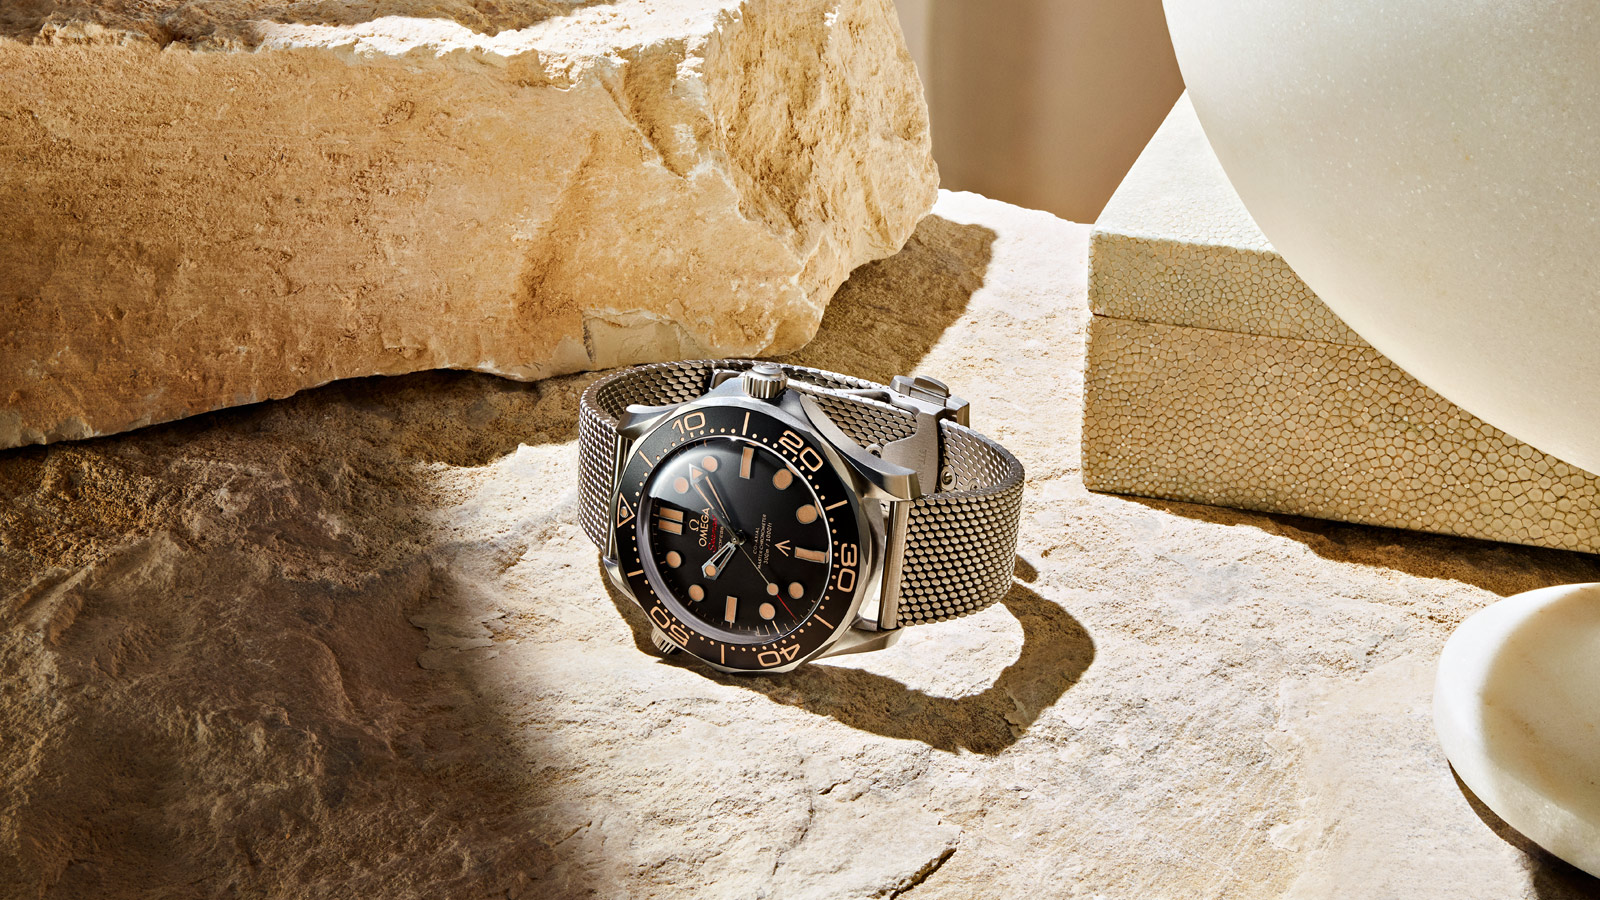 Seamaster Diver 300 M Diver 300M Omega Co‑Axial Master Chronometer 42 mm - 210.90.42.20.01.001 - View 2